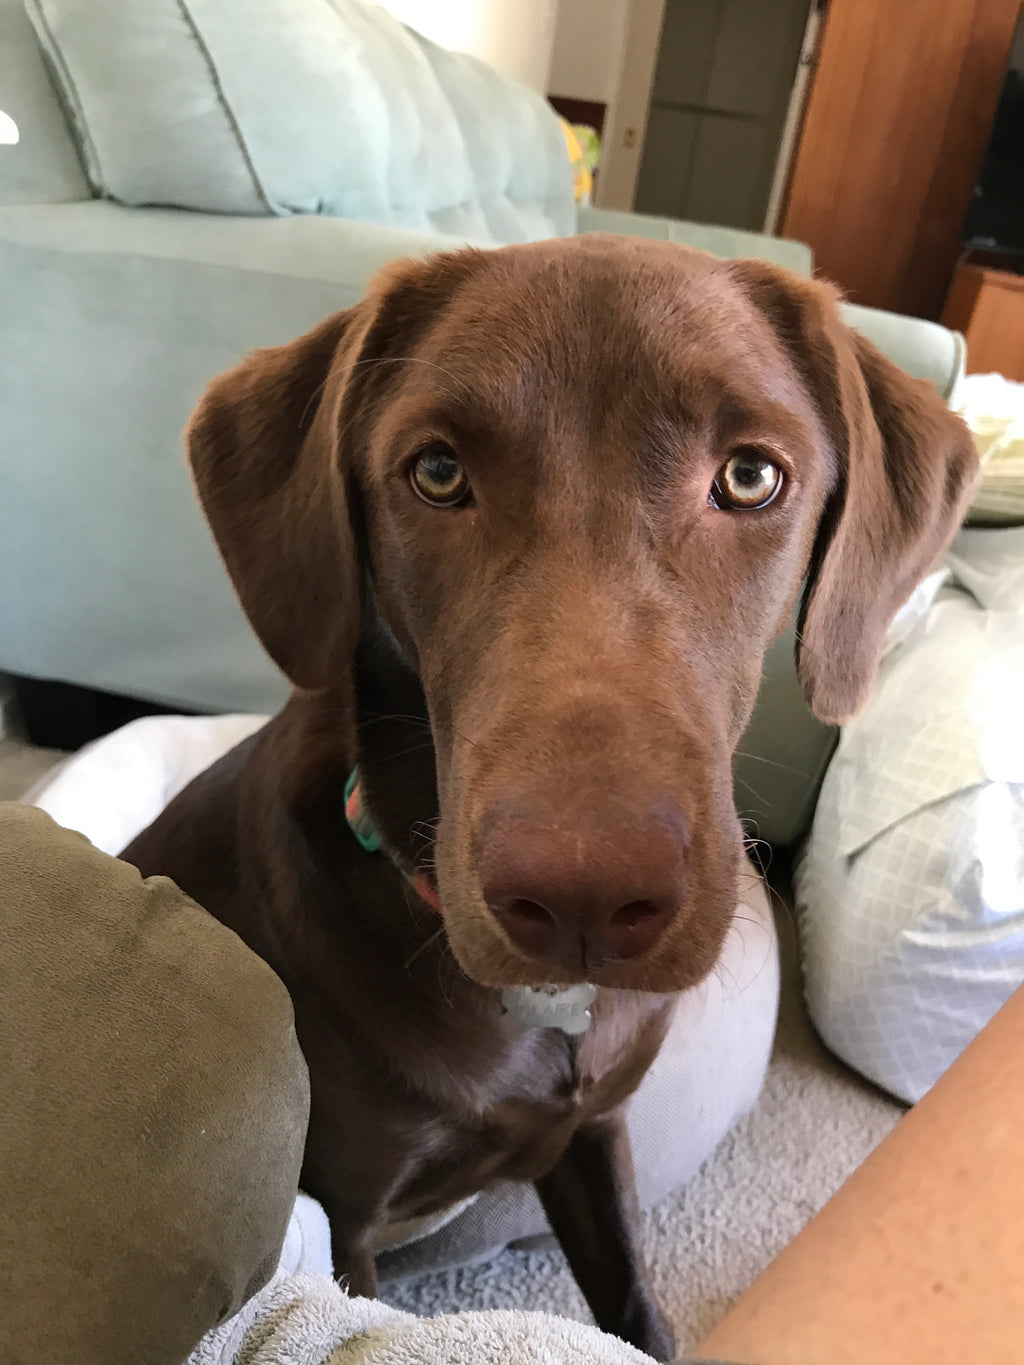 Eclaire The Chocolate Lab!